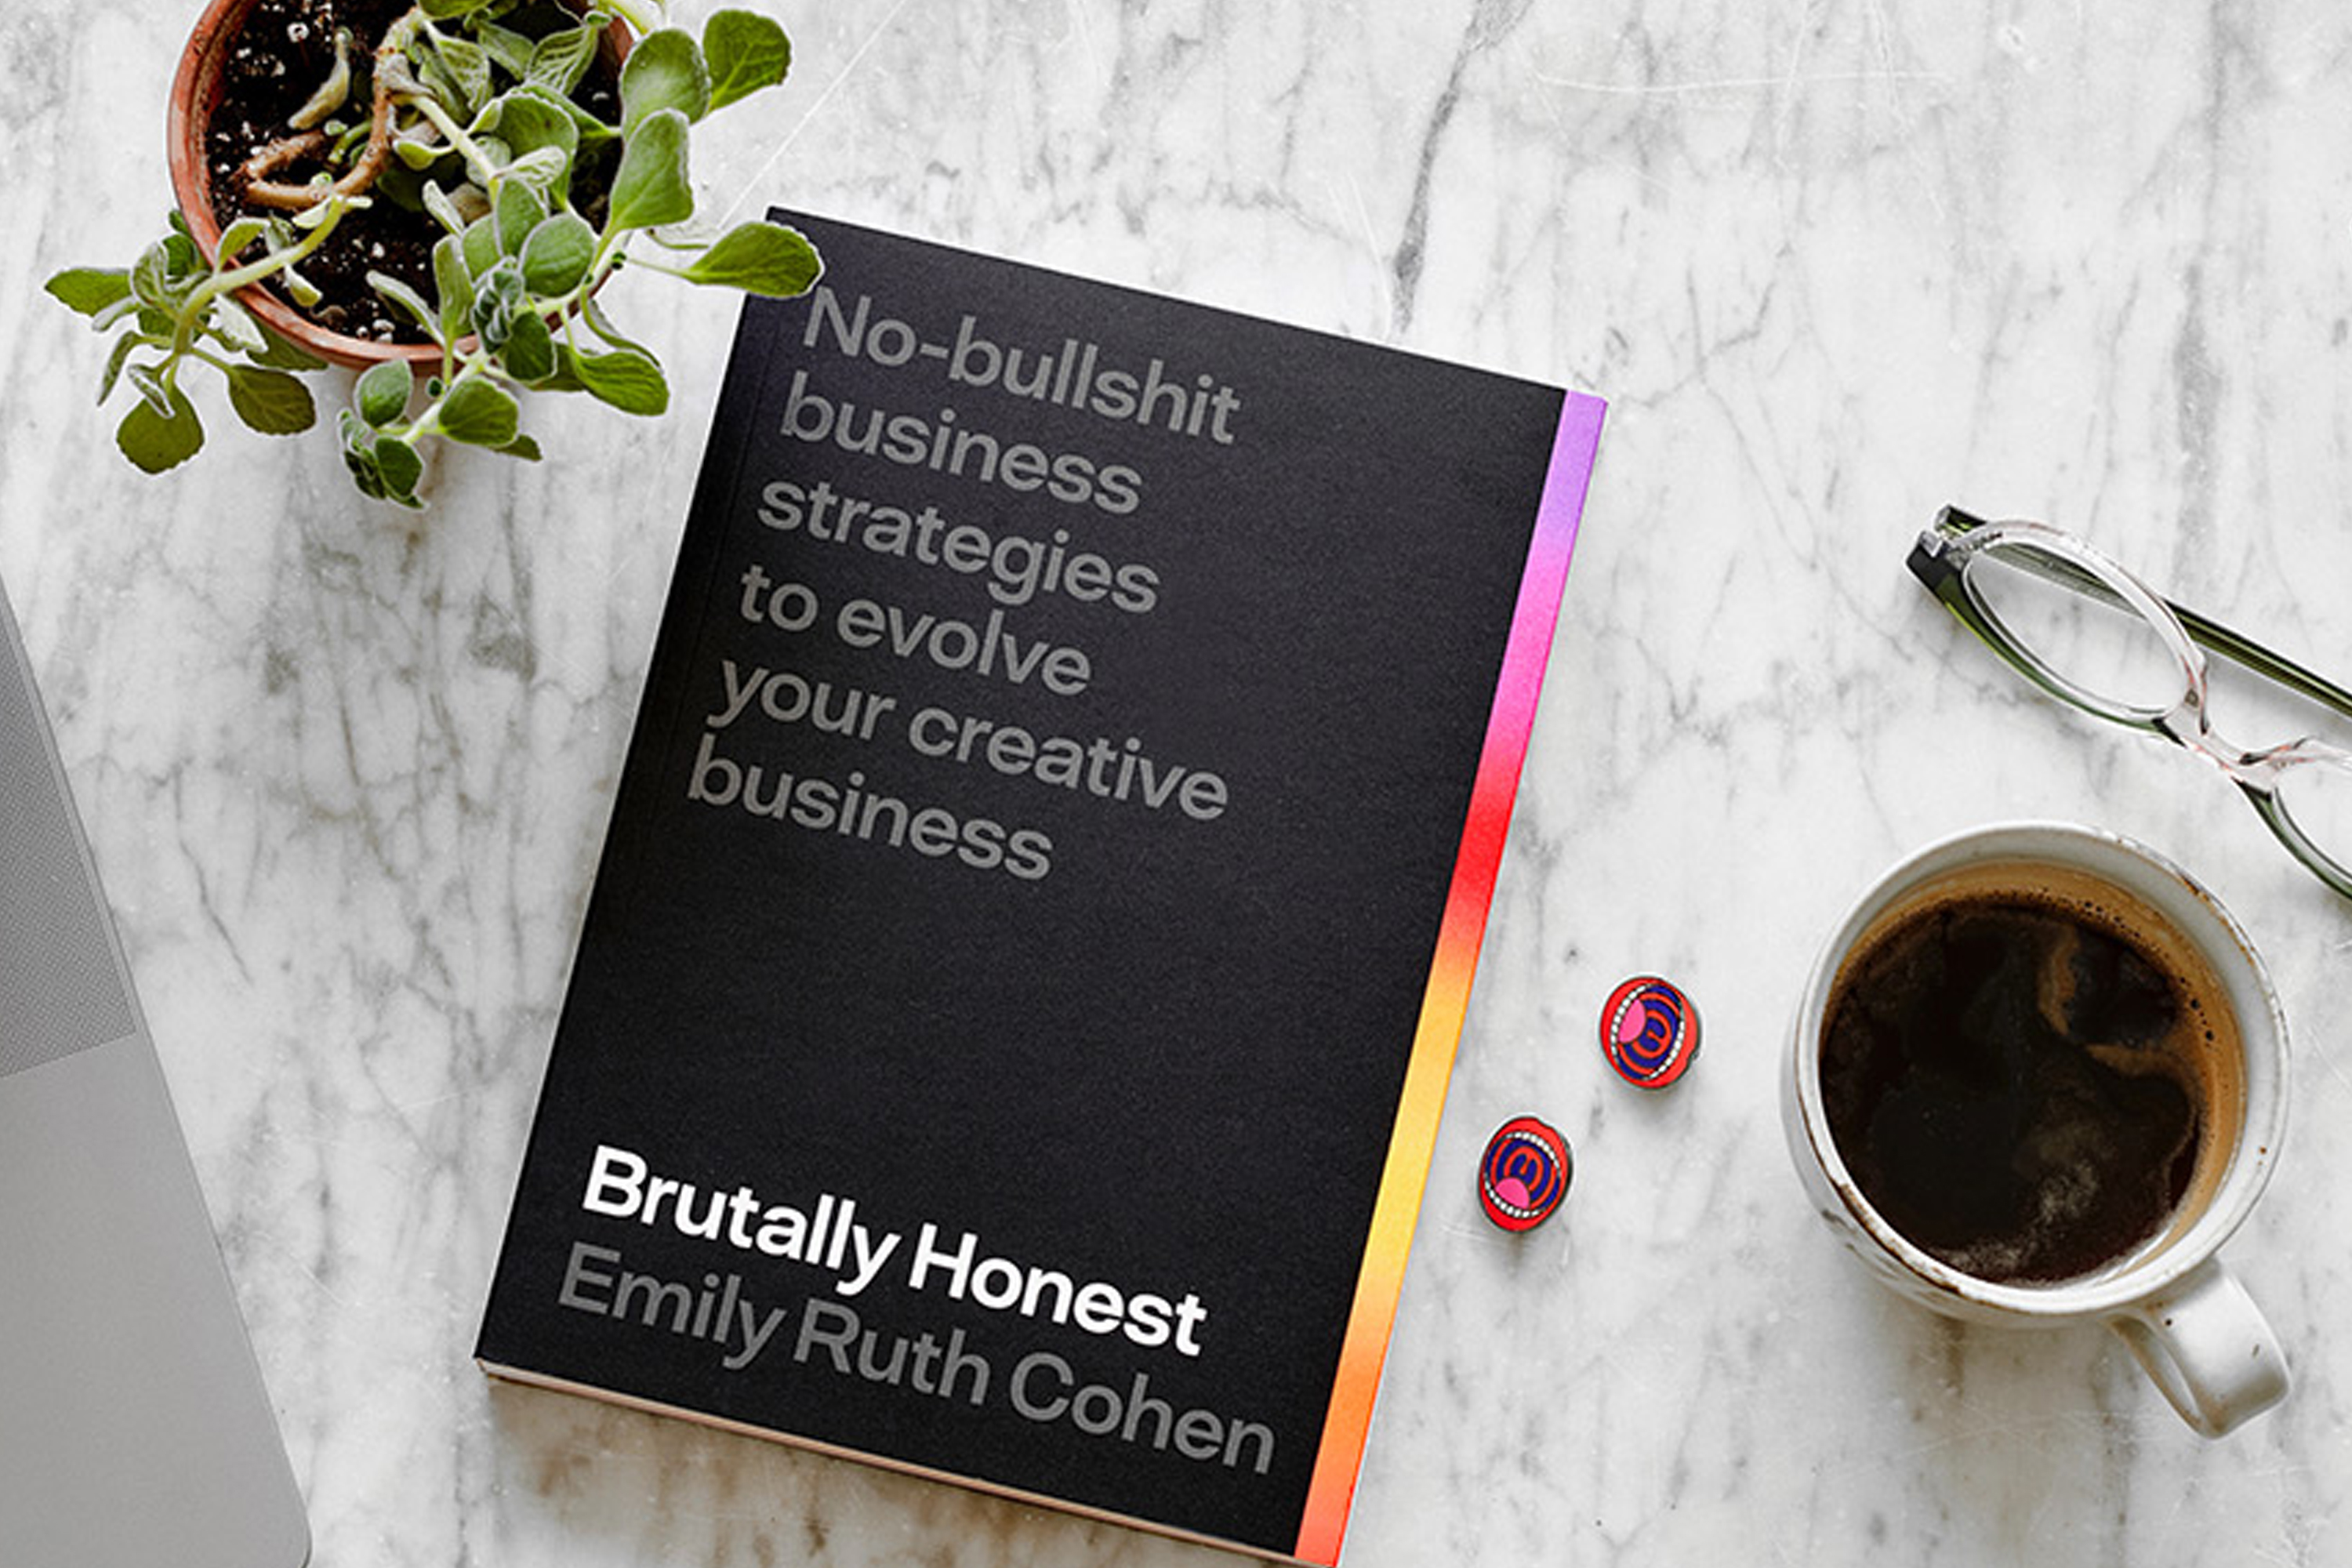 The Best Books on Strategy, Branding and Business